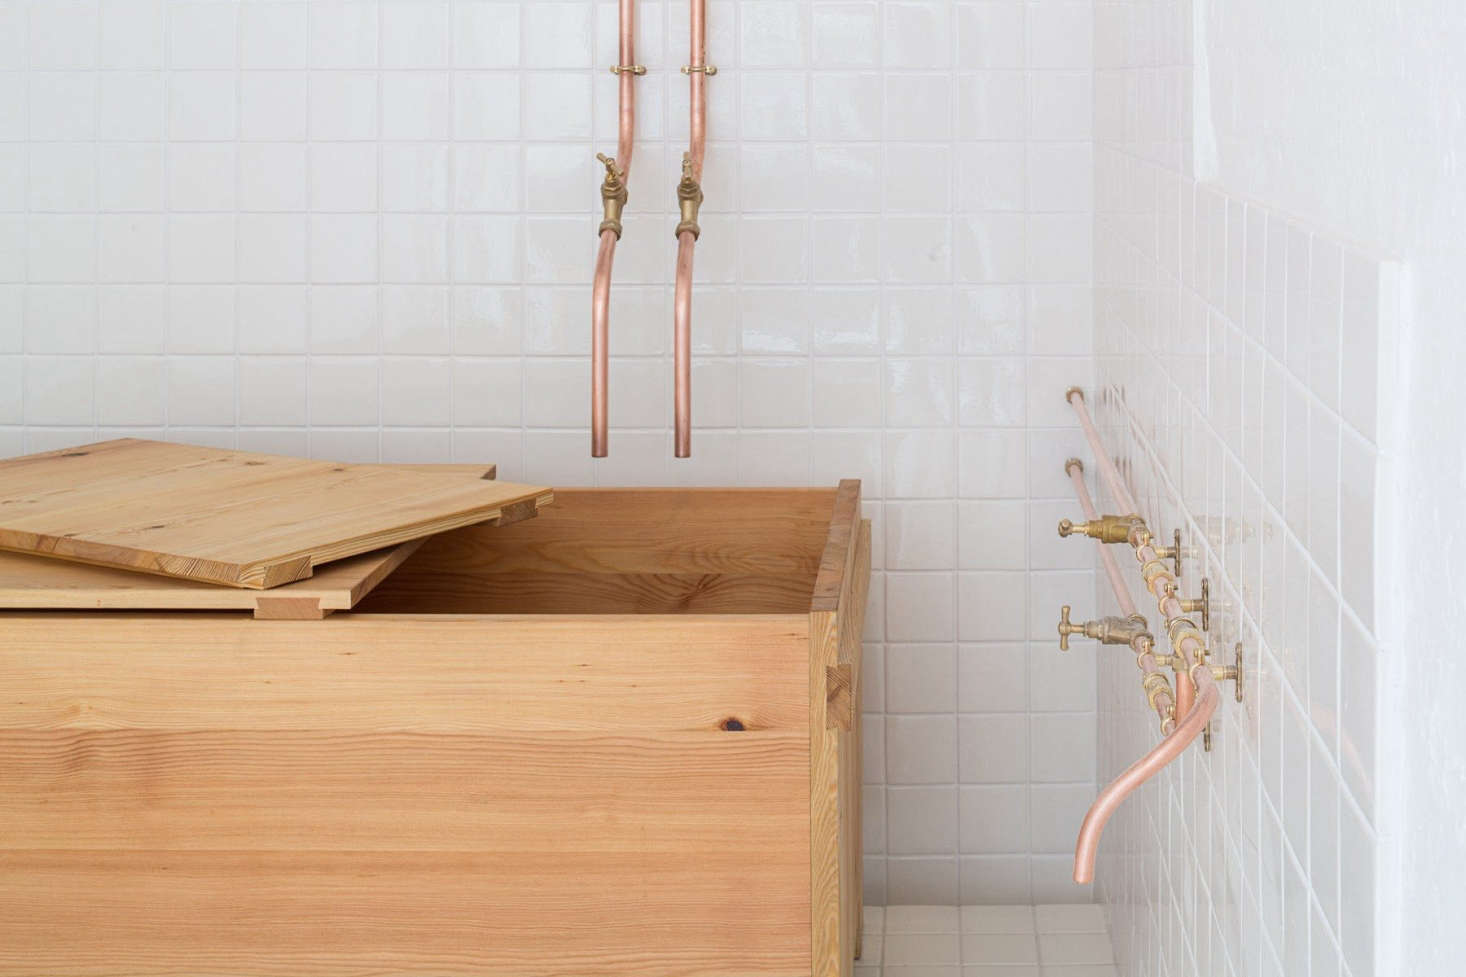 The tub is theBadbox from Studio Anna van der Lei. It's made from larch wood that is treated with a colorless and odorless mineral oil. Studio Anna van der Lei works closely with each client to create the right tub. For more, see our postThe Home Spa Reimagined, from a Dutch-Finnish Designer.